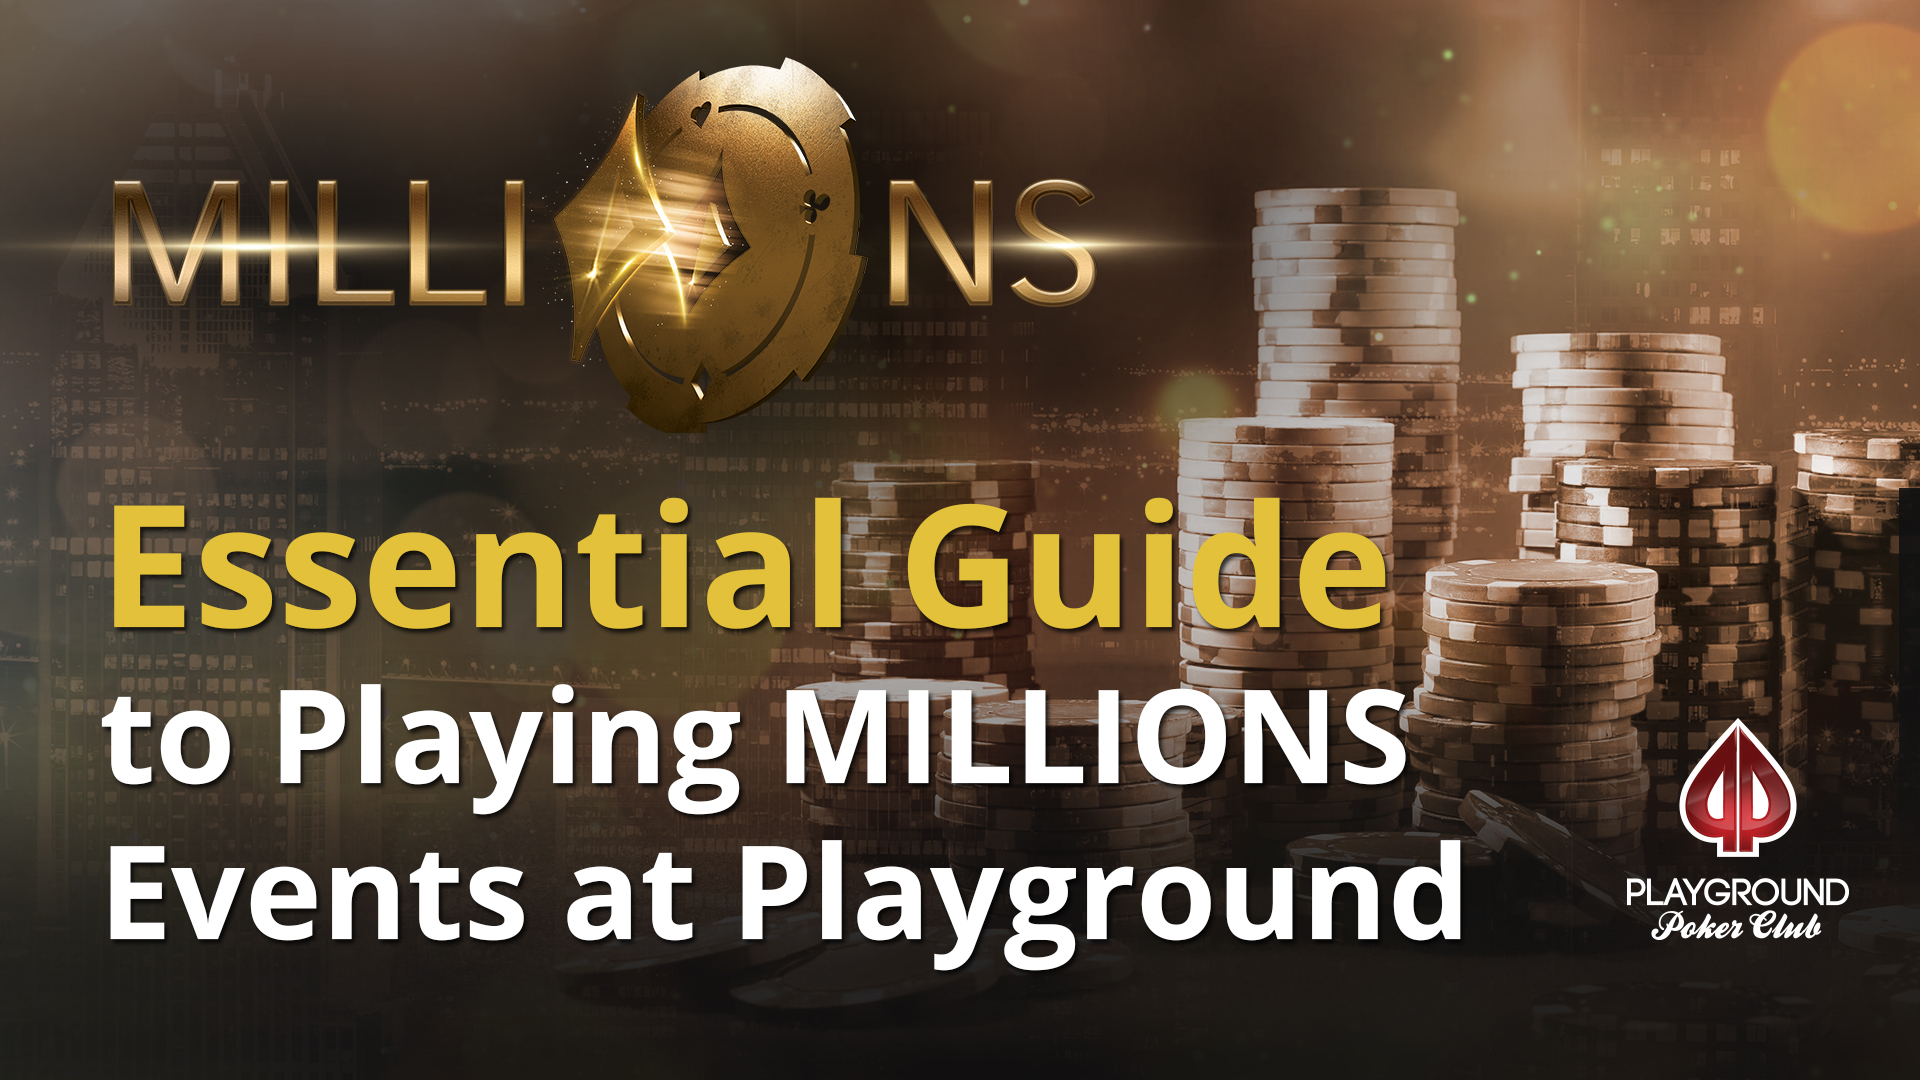 Essential Guide to Playing MILLIONS Events at Playground